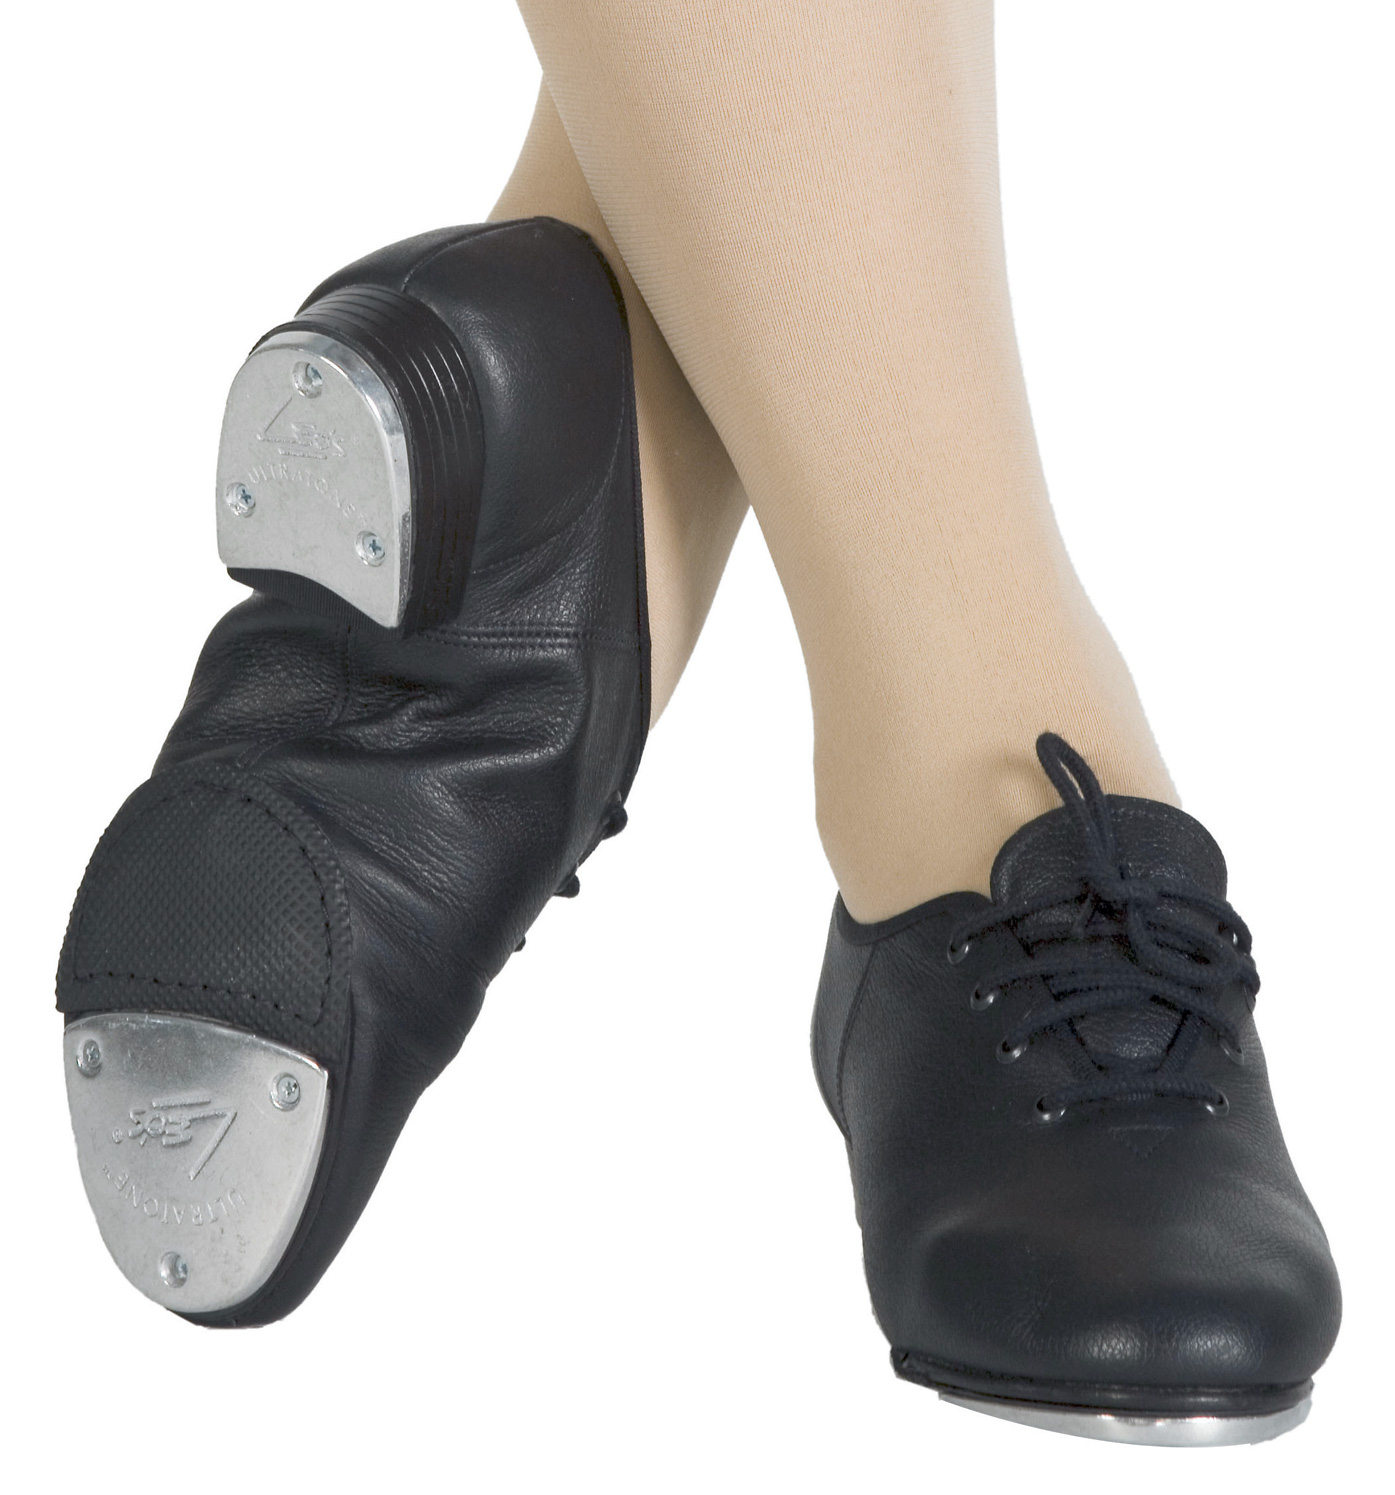 Jazz Shoes Kids Size